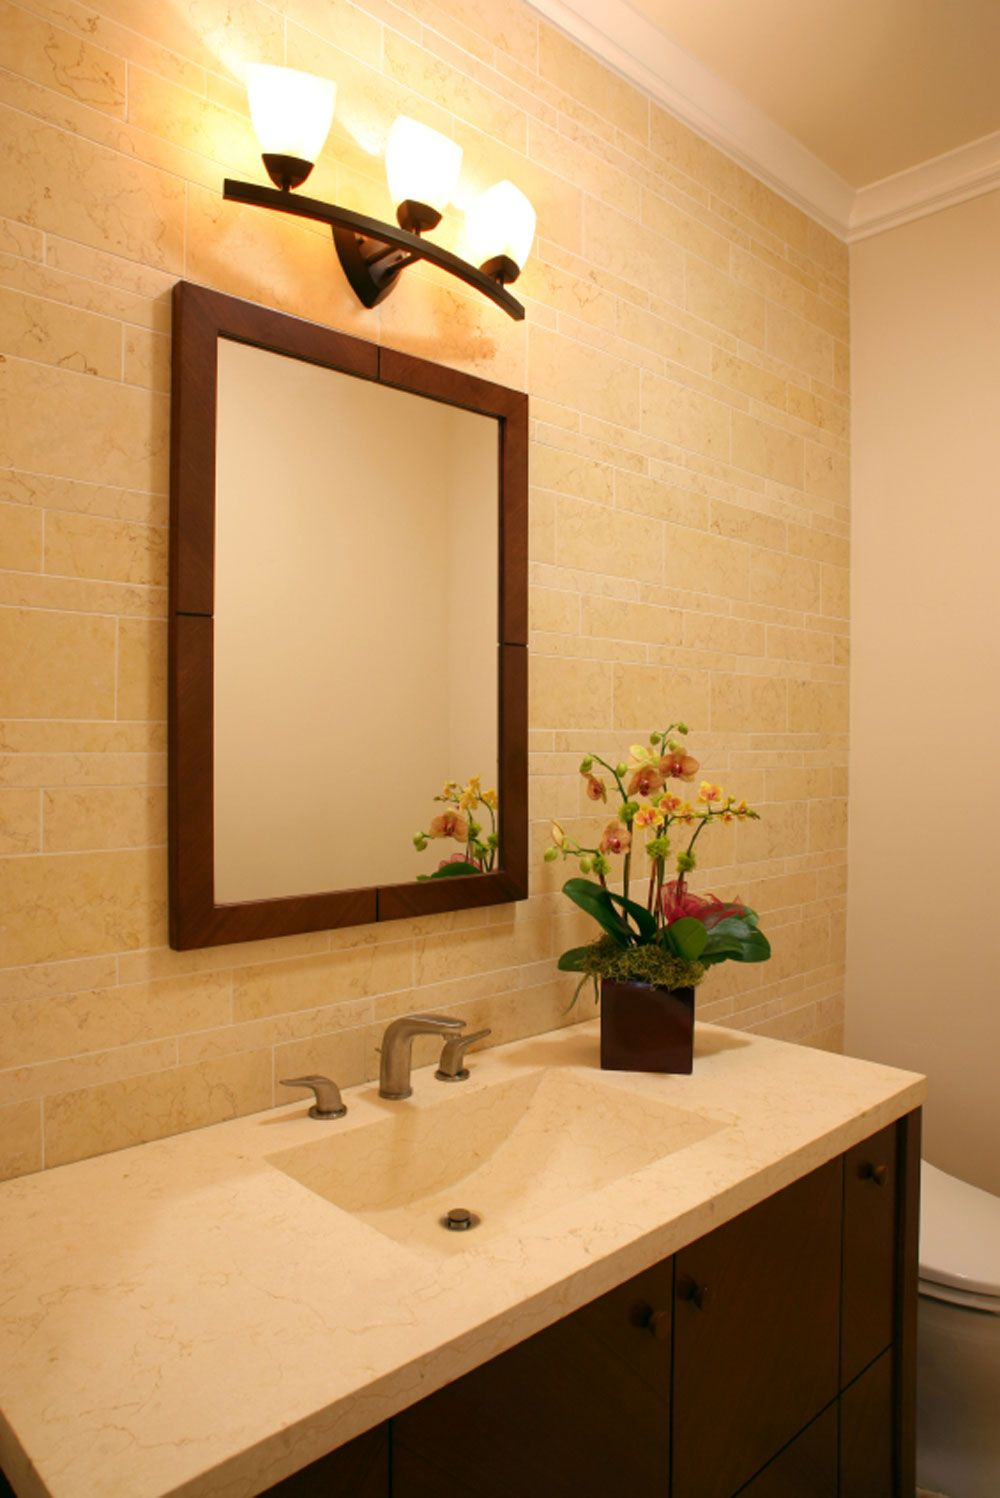 Home decorating ideas bathroom - Bathroom Lighting Fixtures Over Mirror For That Perfect Ambience Light Decorating Ideas